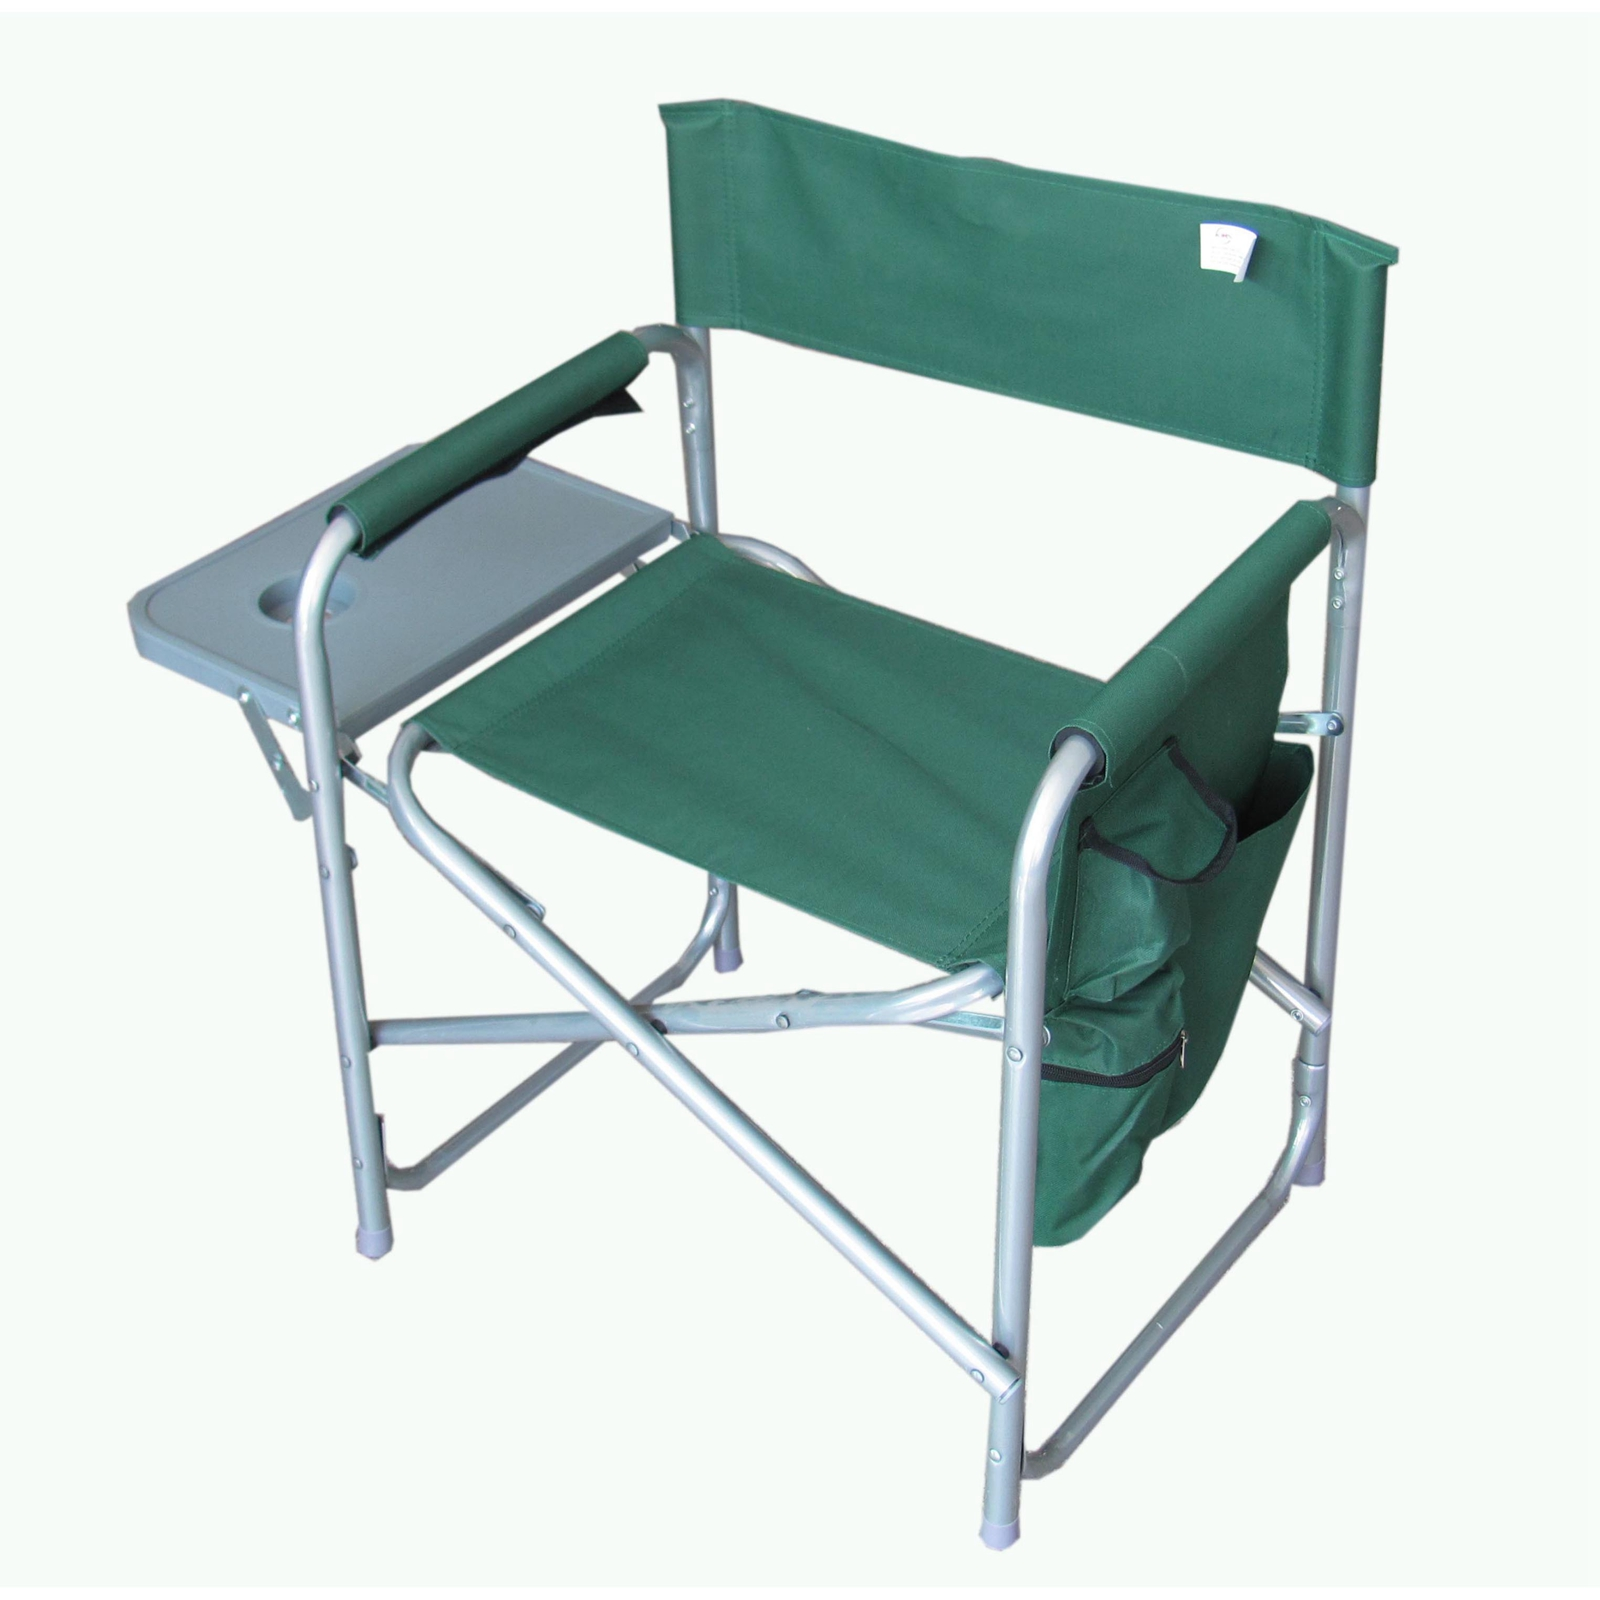 Great 30 pvc folding lounge chair for Pvc pipe lounge chair